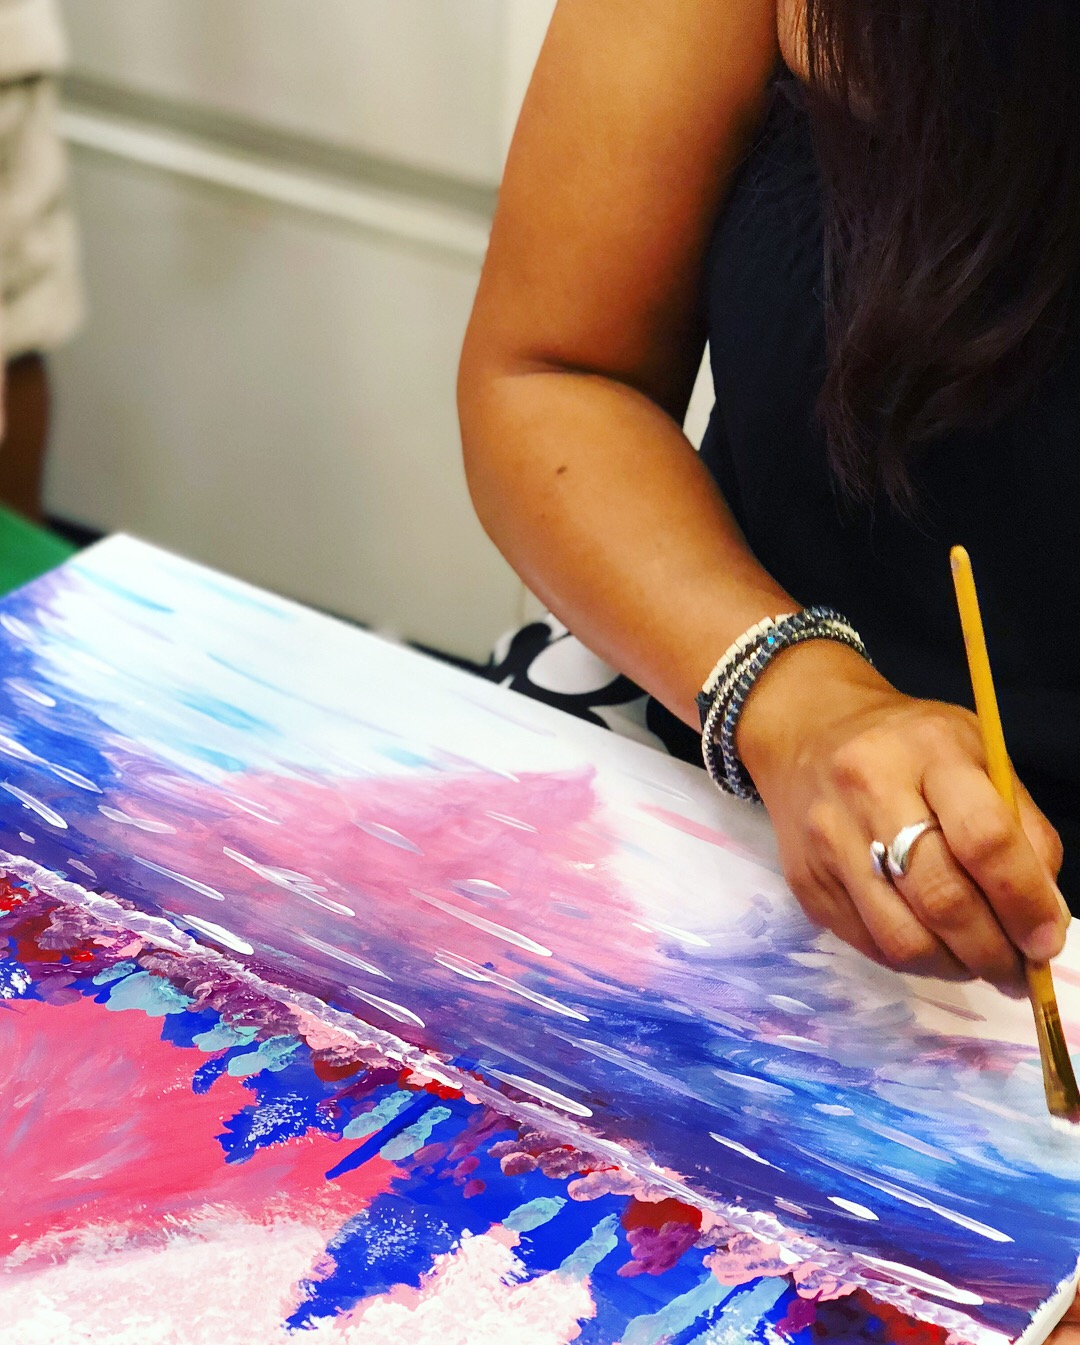 Image of a person painting.